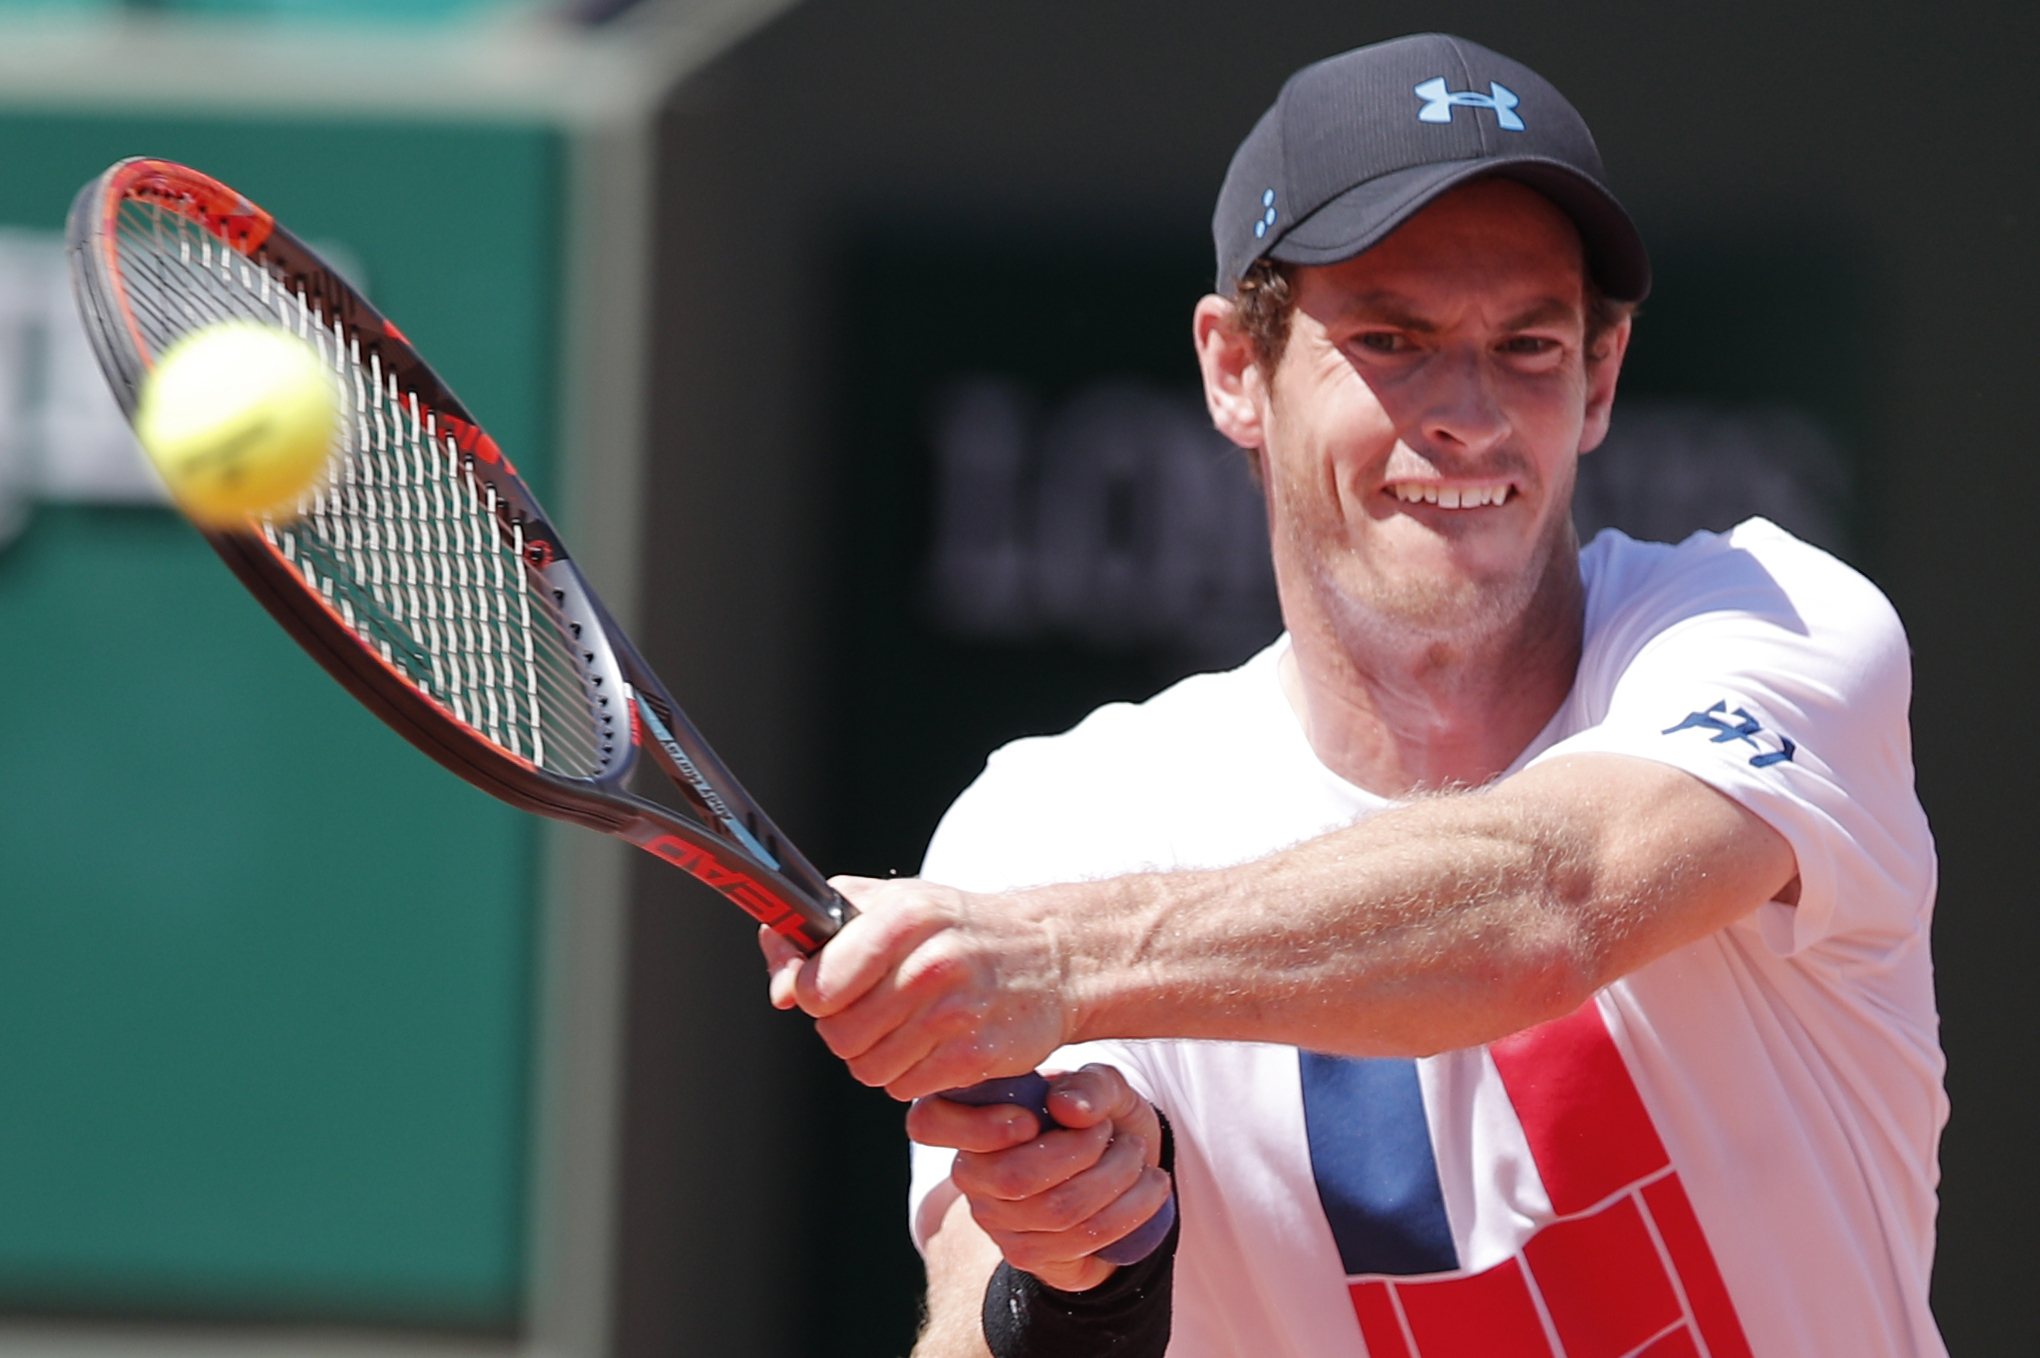 Britain's Andy Murray returns the ball during a training session for the French Open tennis tournament, at the Roland Garros stadium (AP Photo/Christophe Ena)